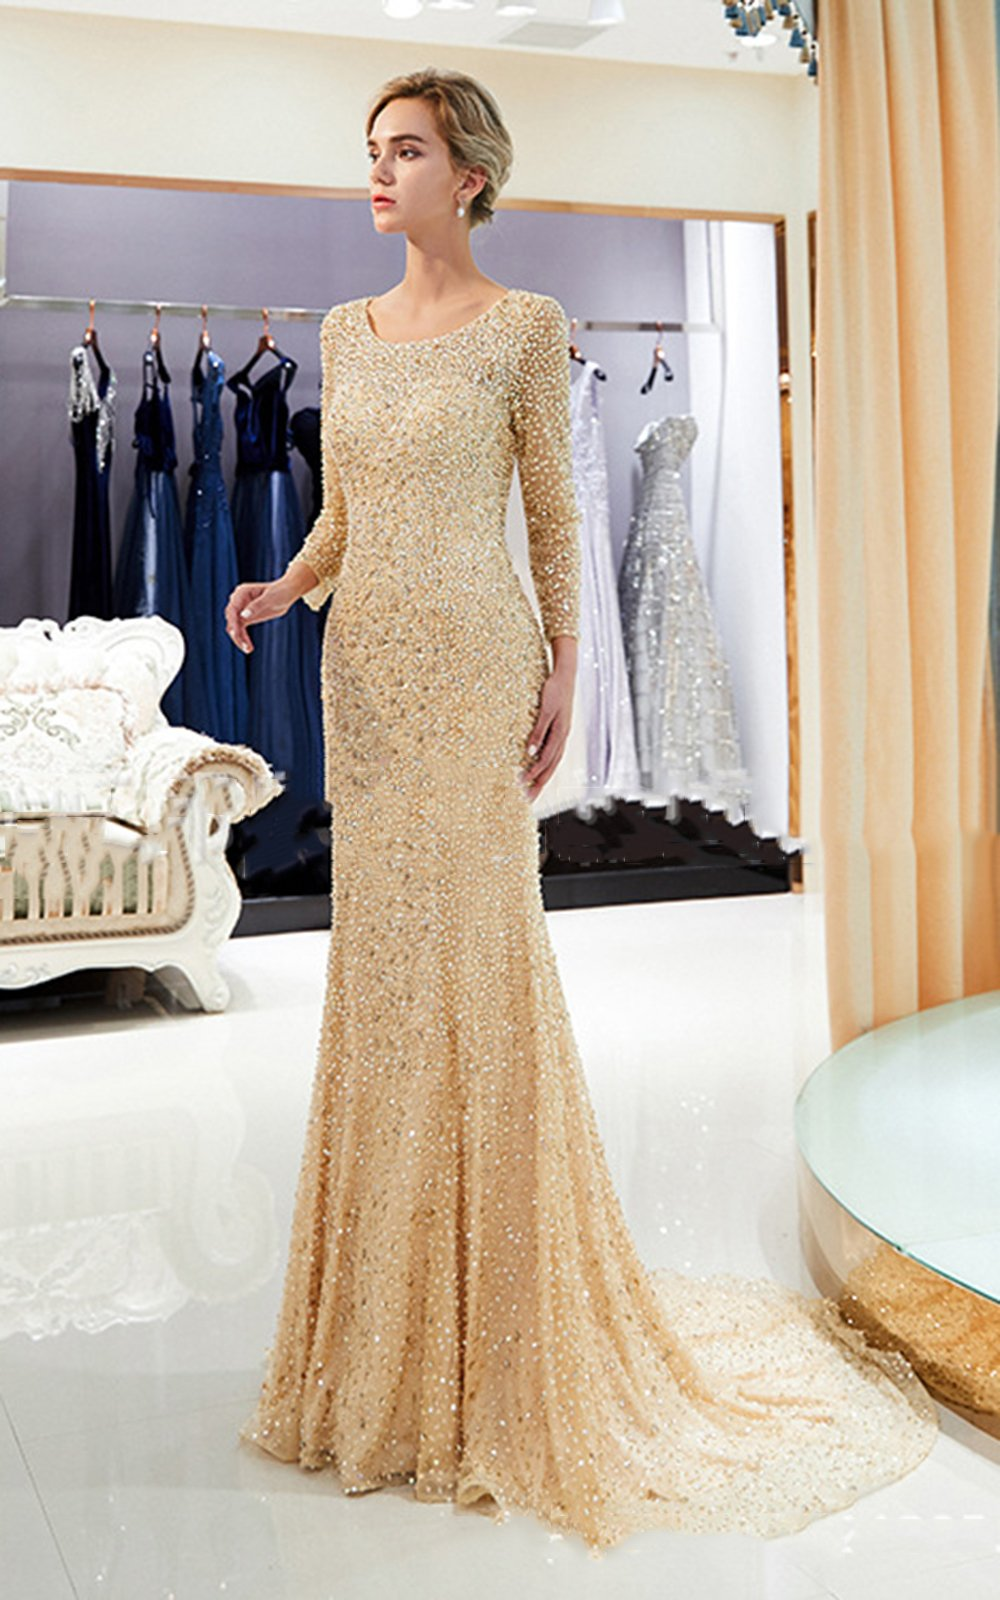 Long-Sleeved Two-Color Backless Important Occasions Dinner Dress Wedding Dress